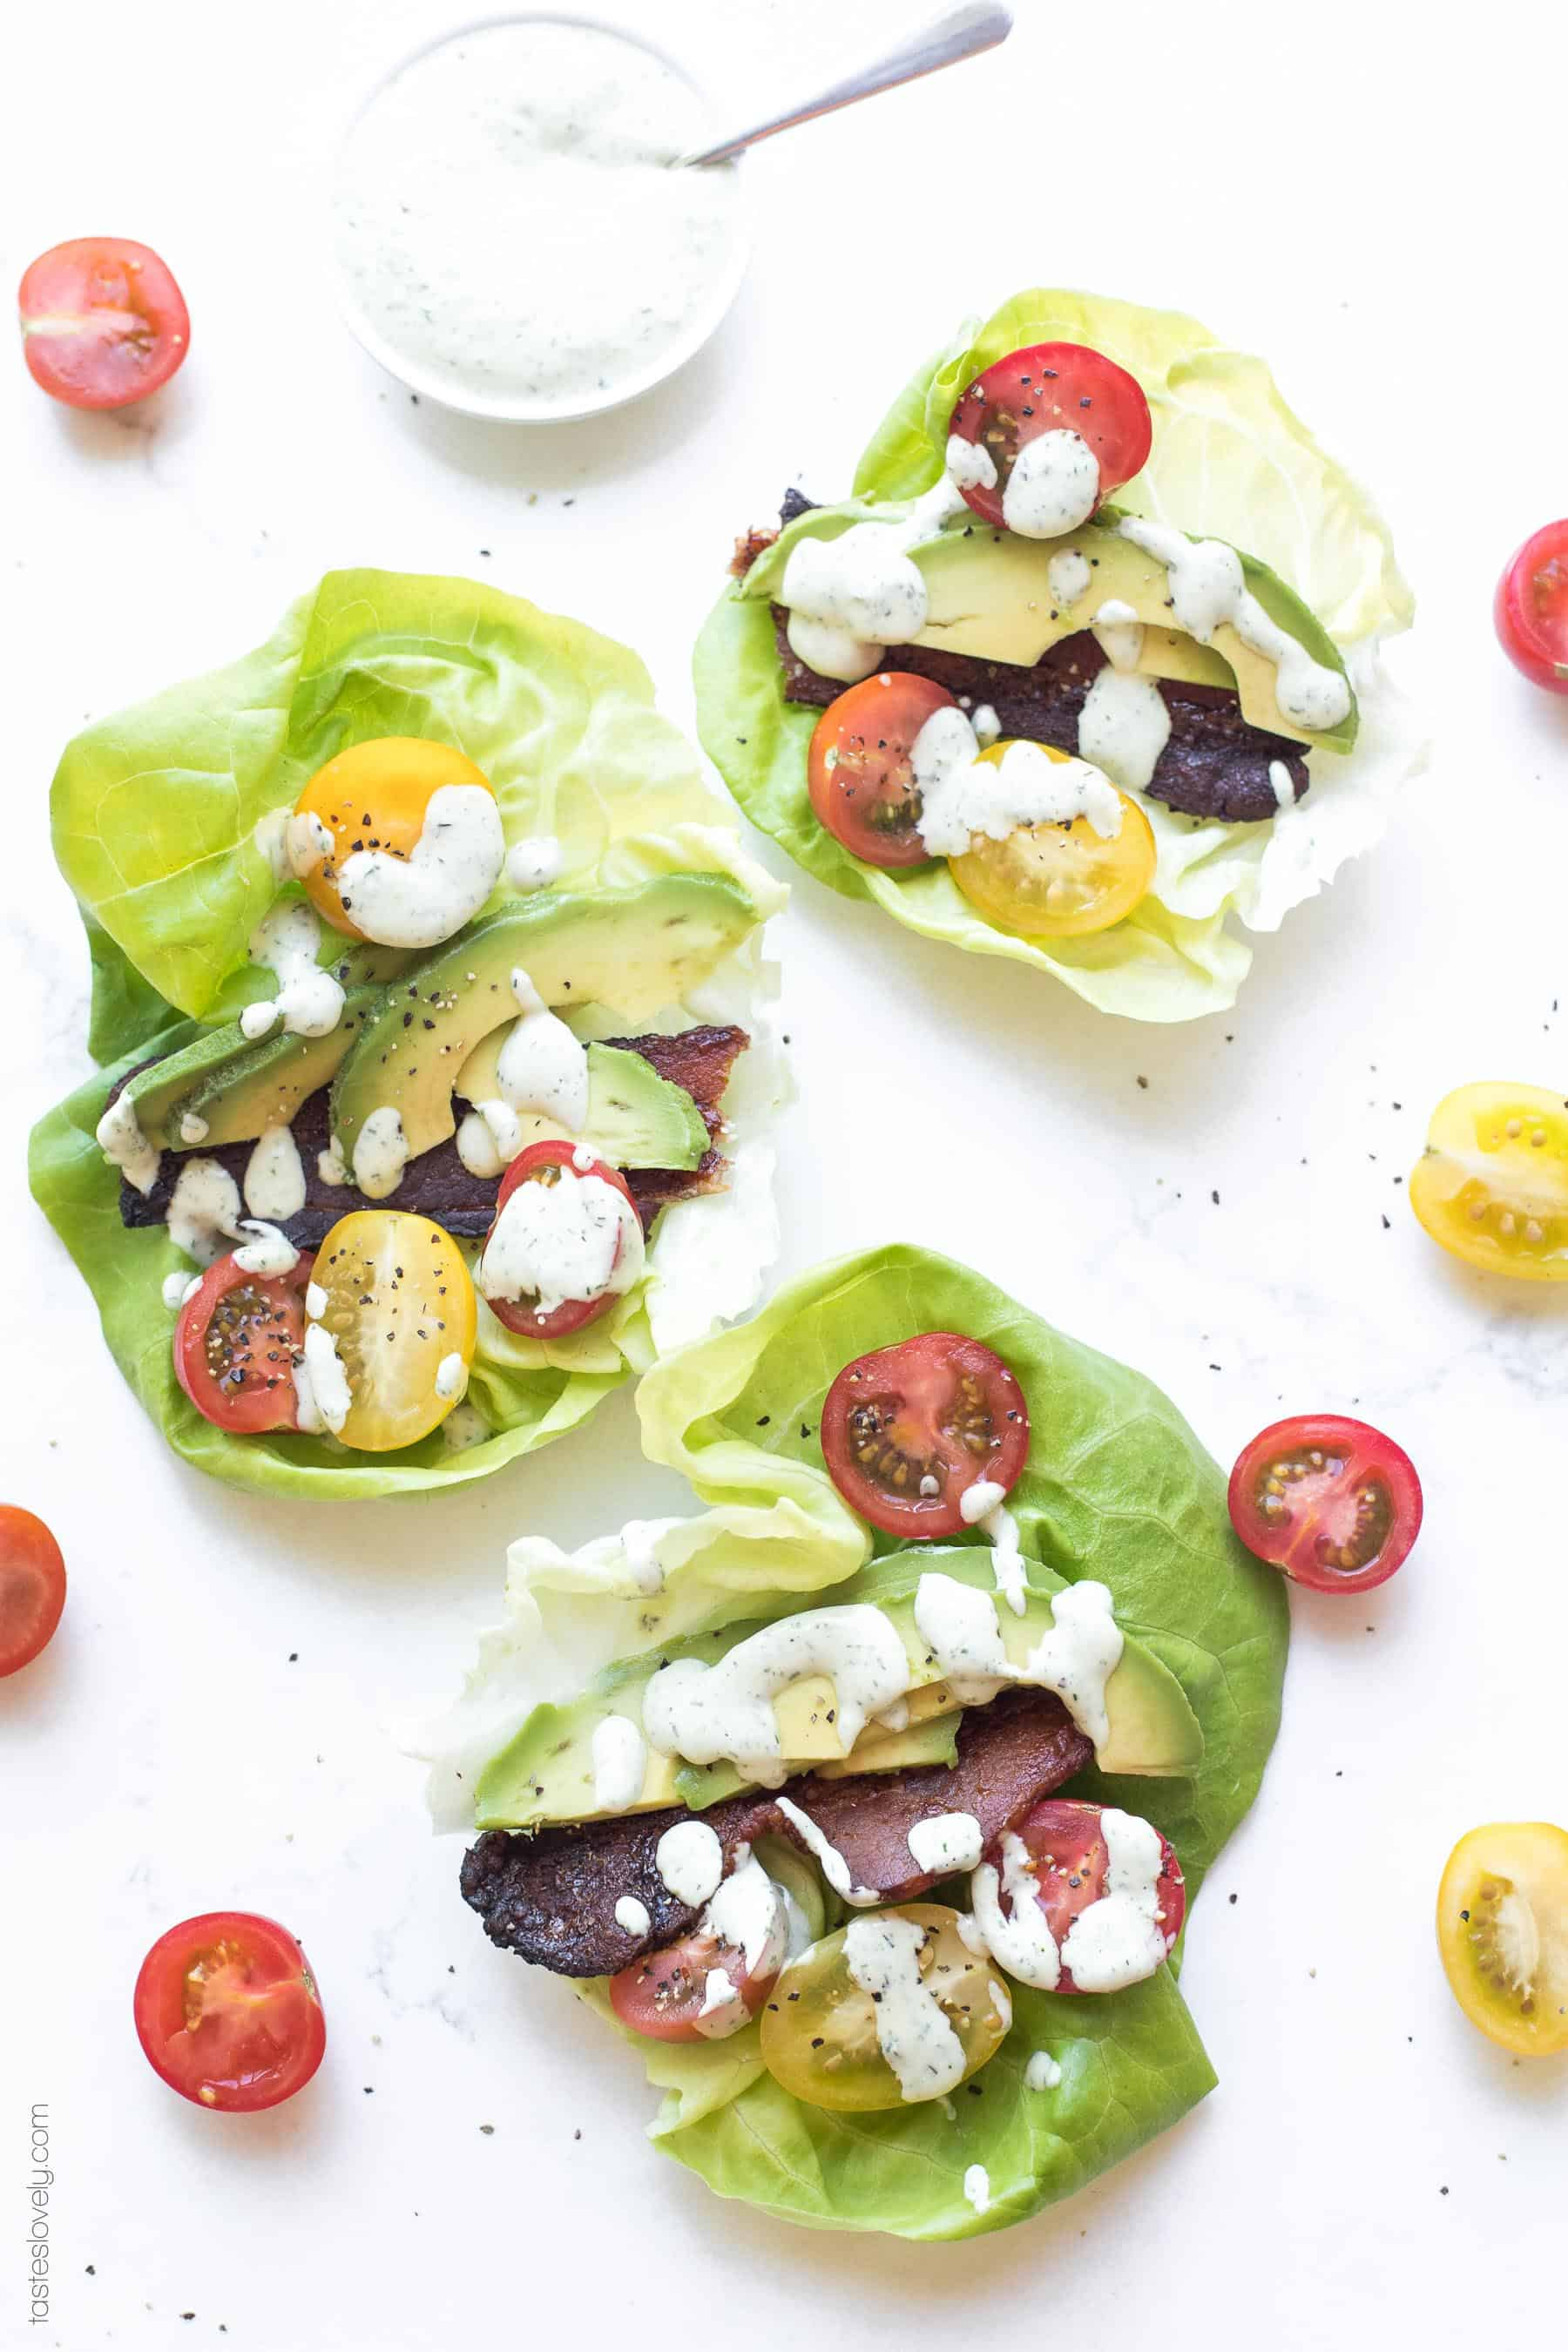 Paleo, Whole30 + Keto BLT Lettuce Wraps Recipe with avocado ranch dressing - a healthy and delicious lunch, dinner or appetizer. #paleo #whole30 #keto #glutenfree #grainfree #dairyfree #lowcarb #sugarfree #cleaneating #realfood